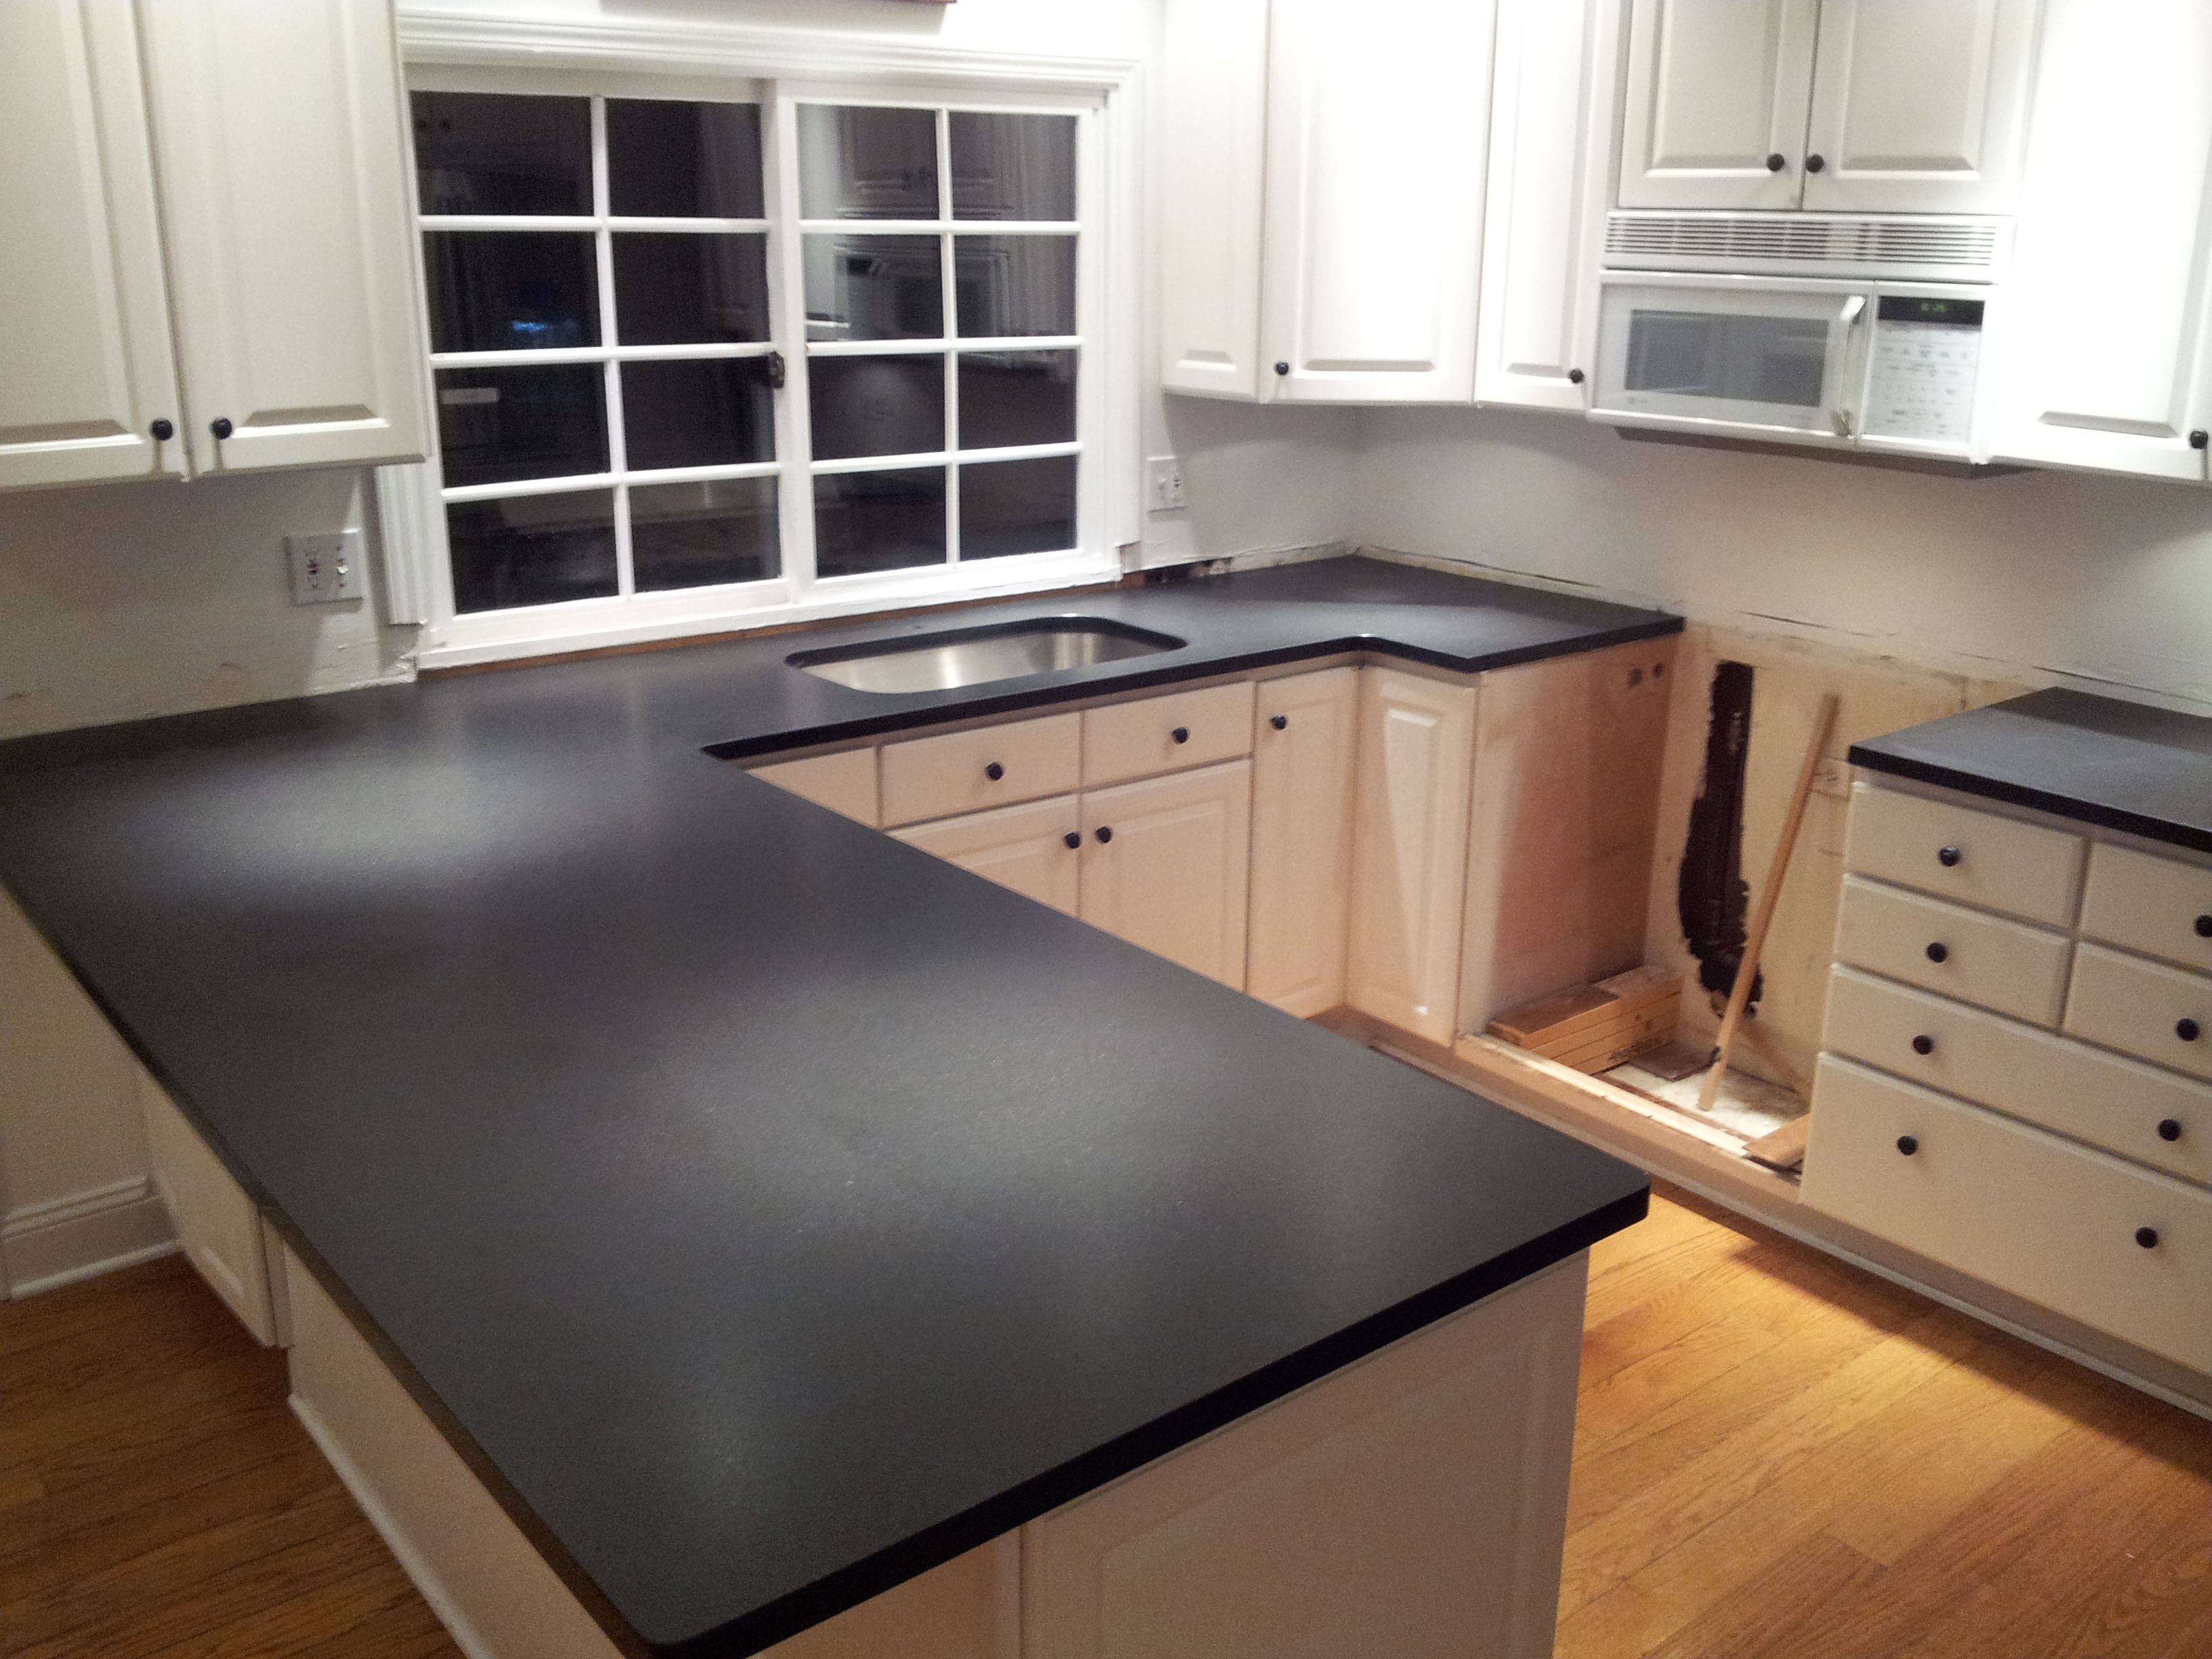 We Offer Granite Countertops Installation And Fabrication In The